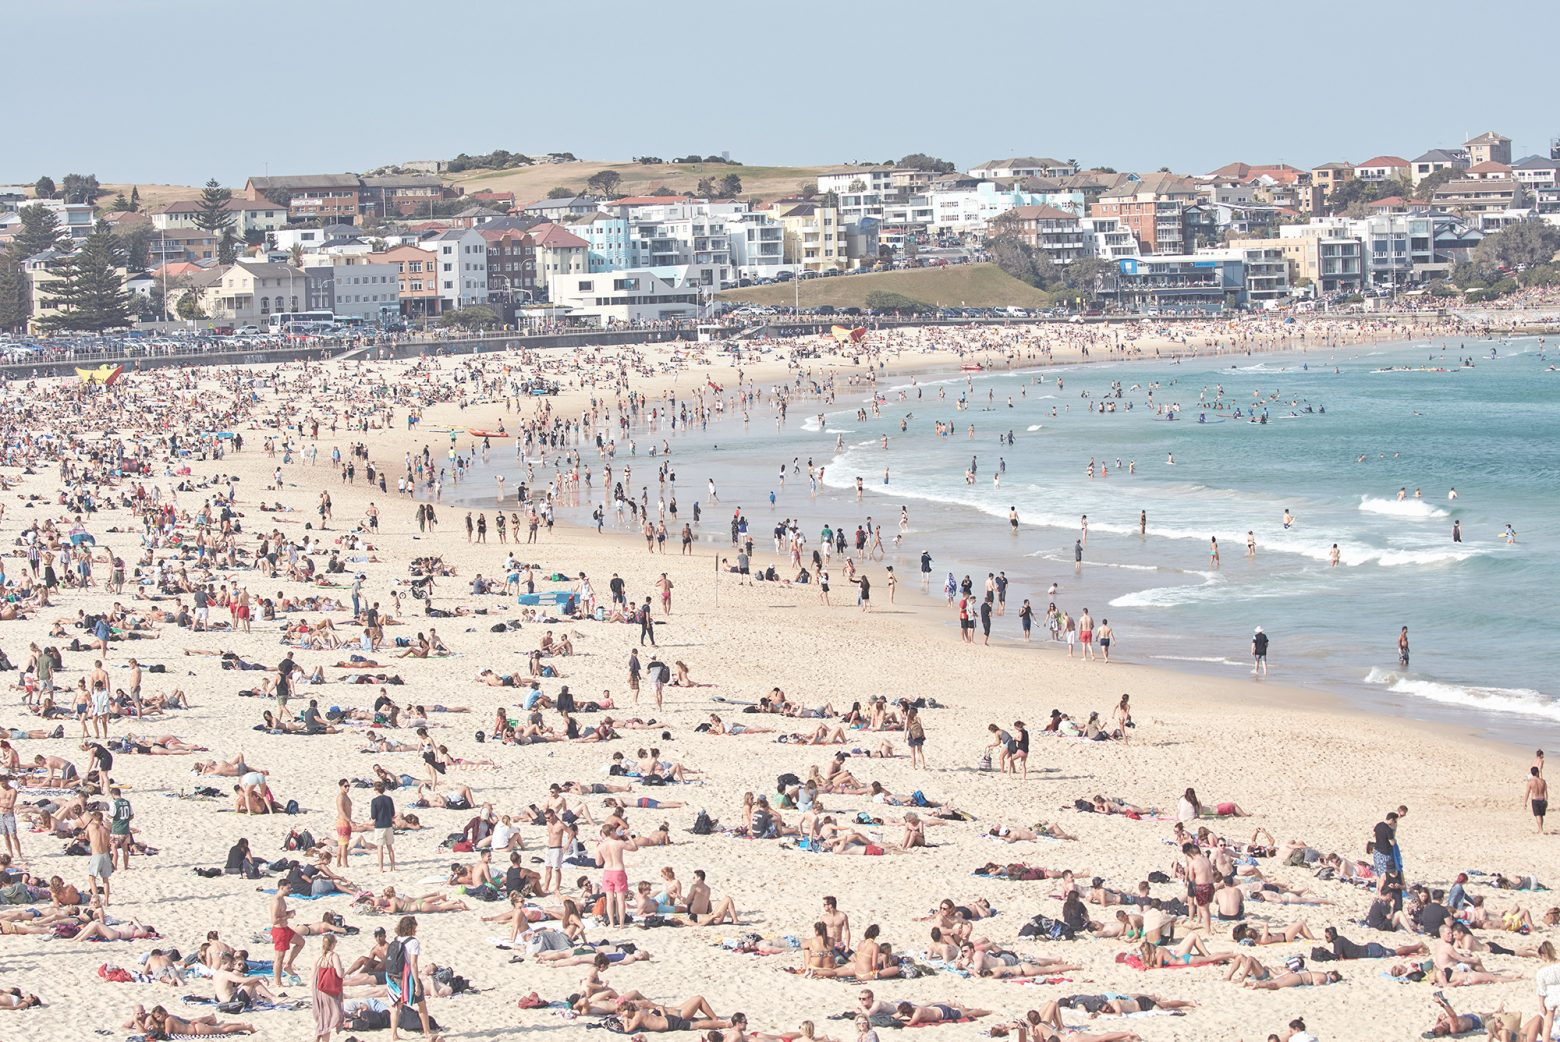 Bondi beach, 900 metres of humans